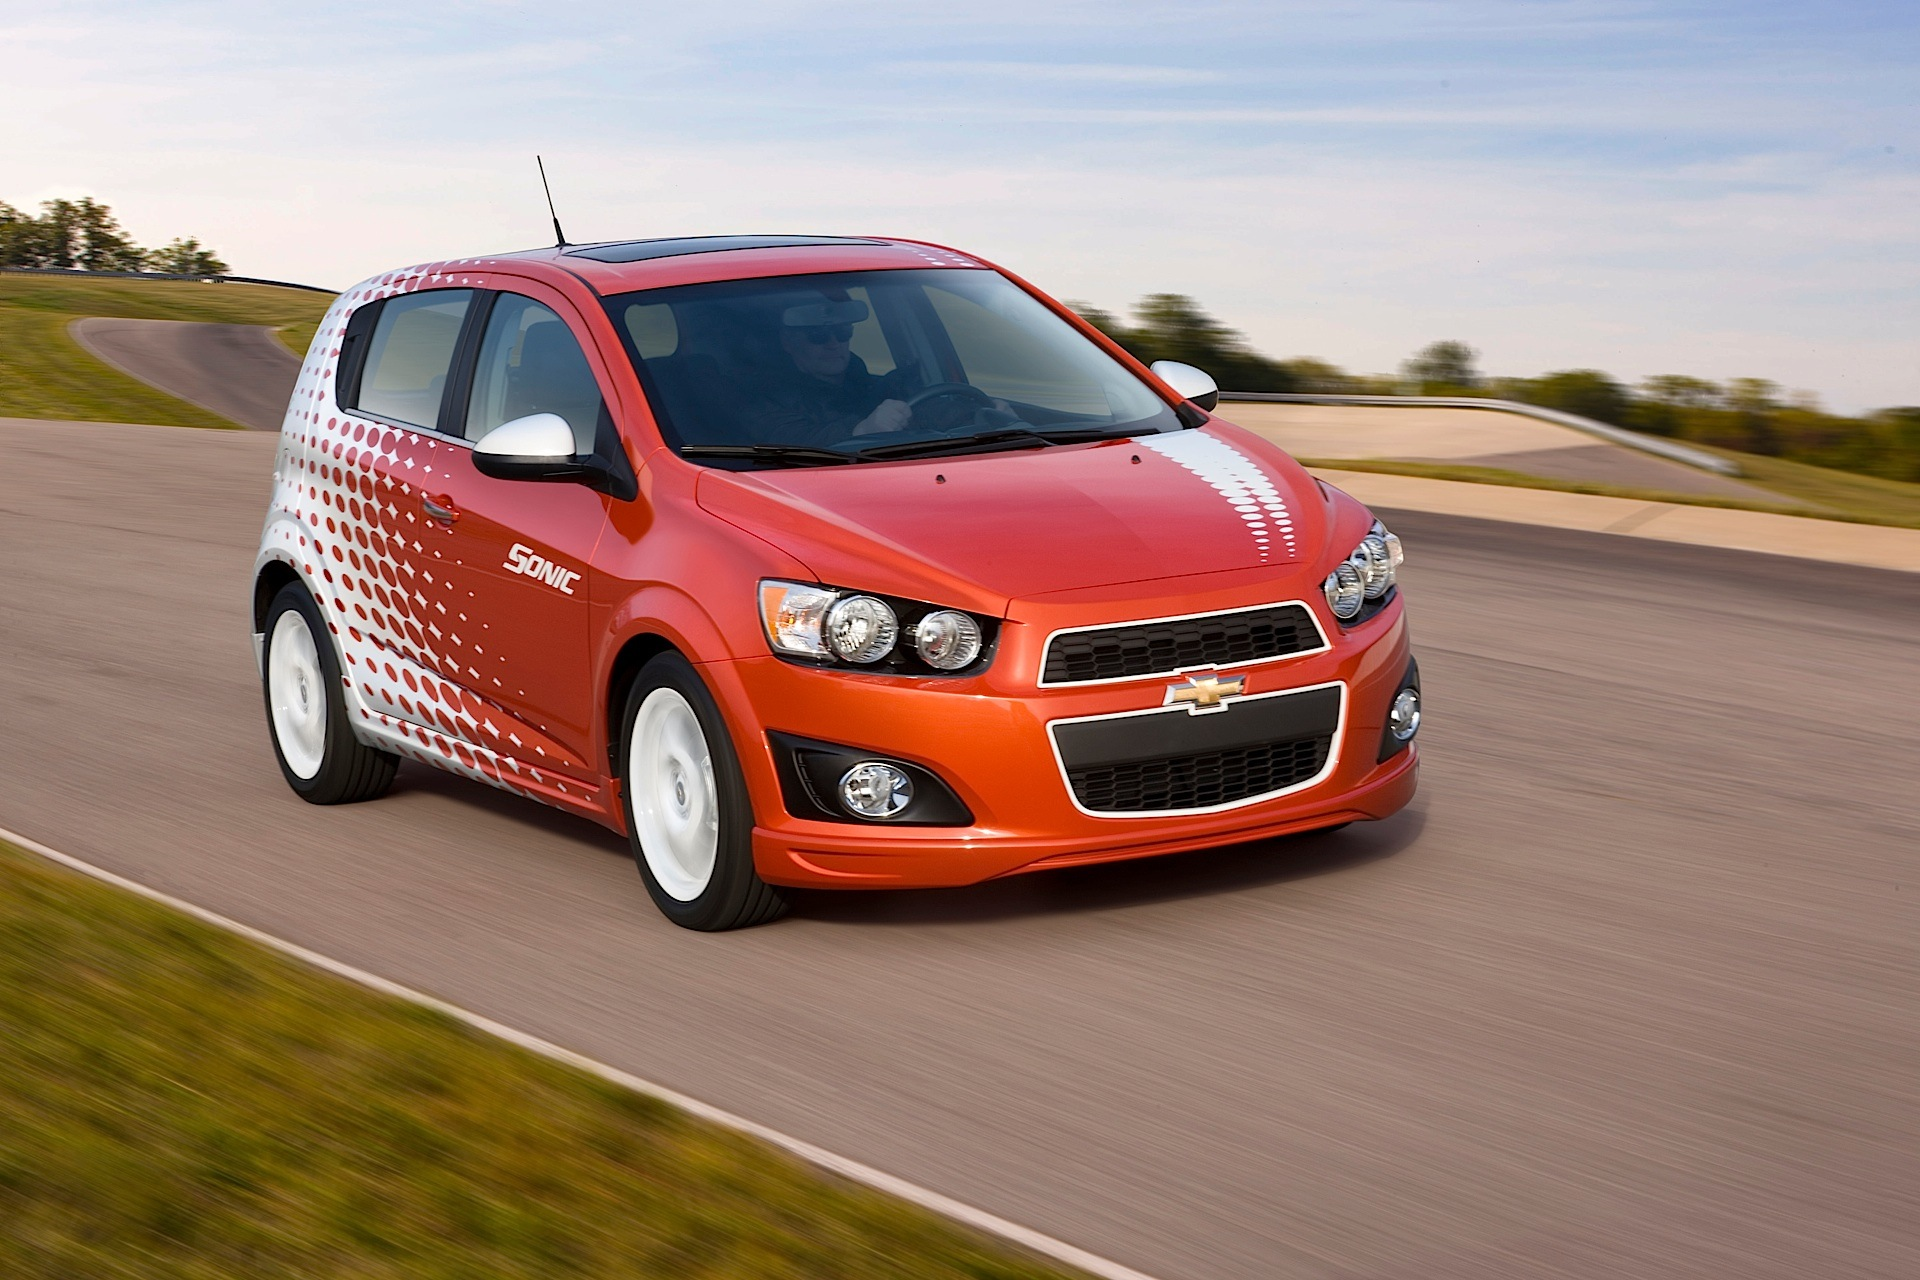 CHEVROLET Sonic Hatchback 5 Doors specs & photos - 2011 ...